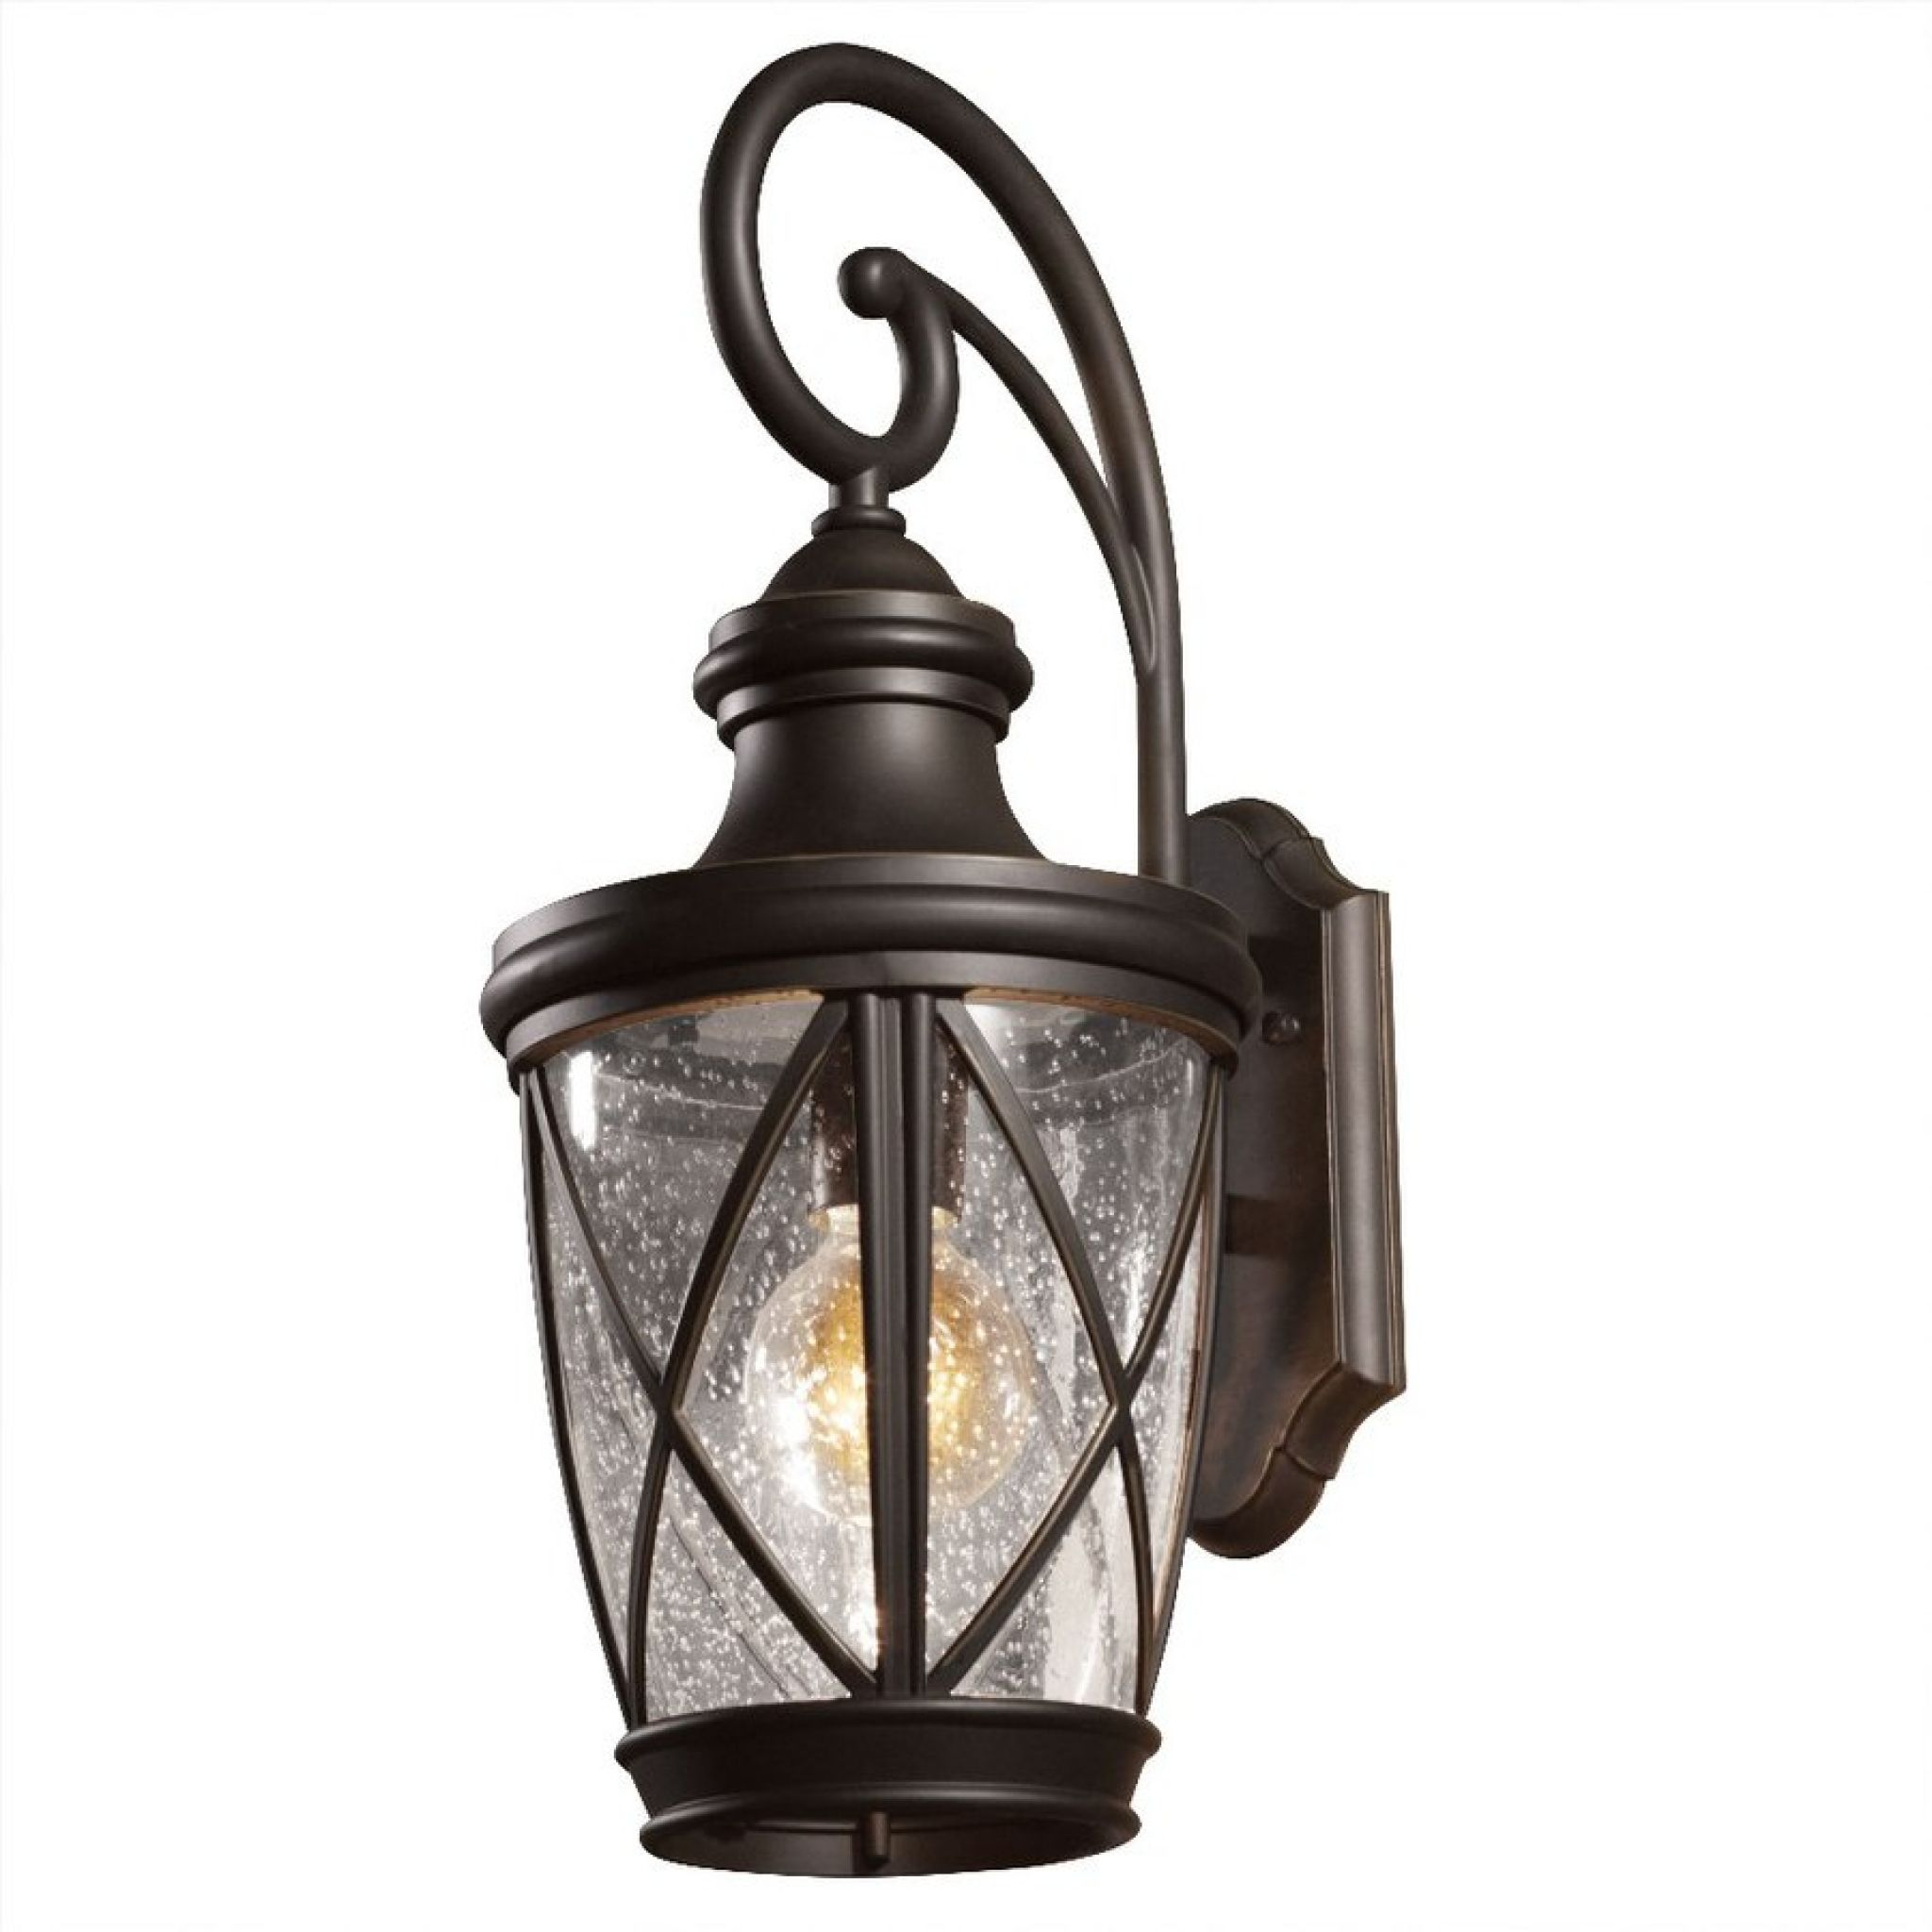 light murray of outdoor sensor motion porch lighting elegant fixtures fixture feiss